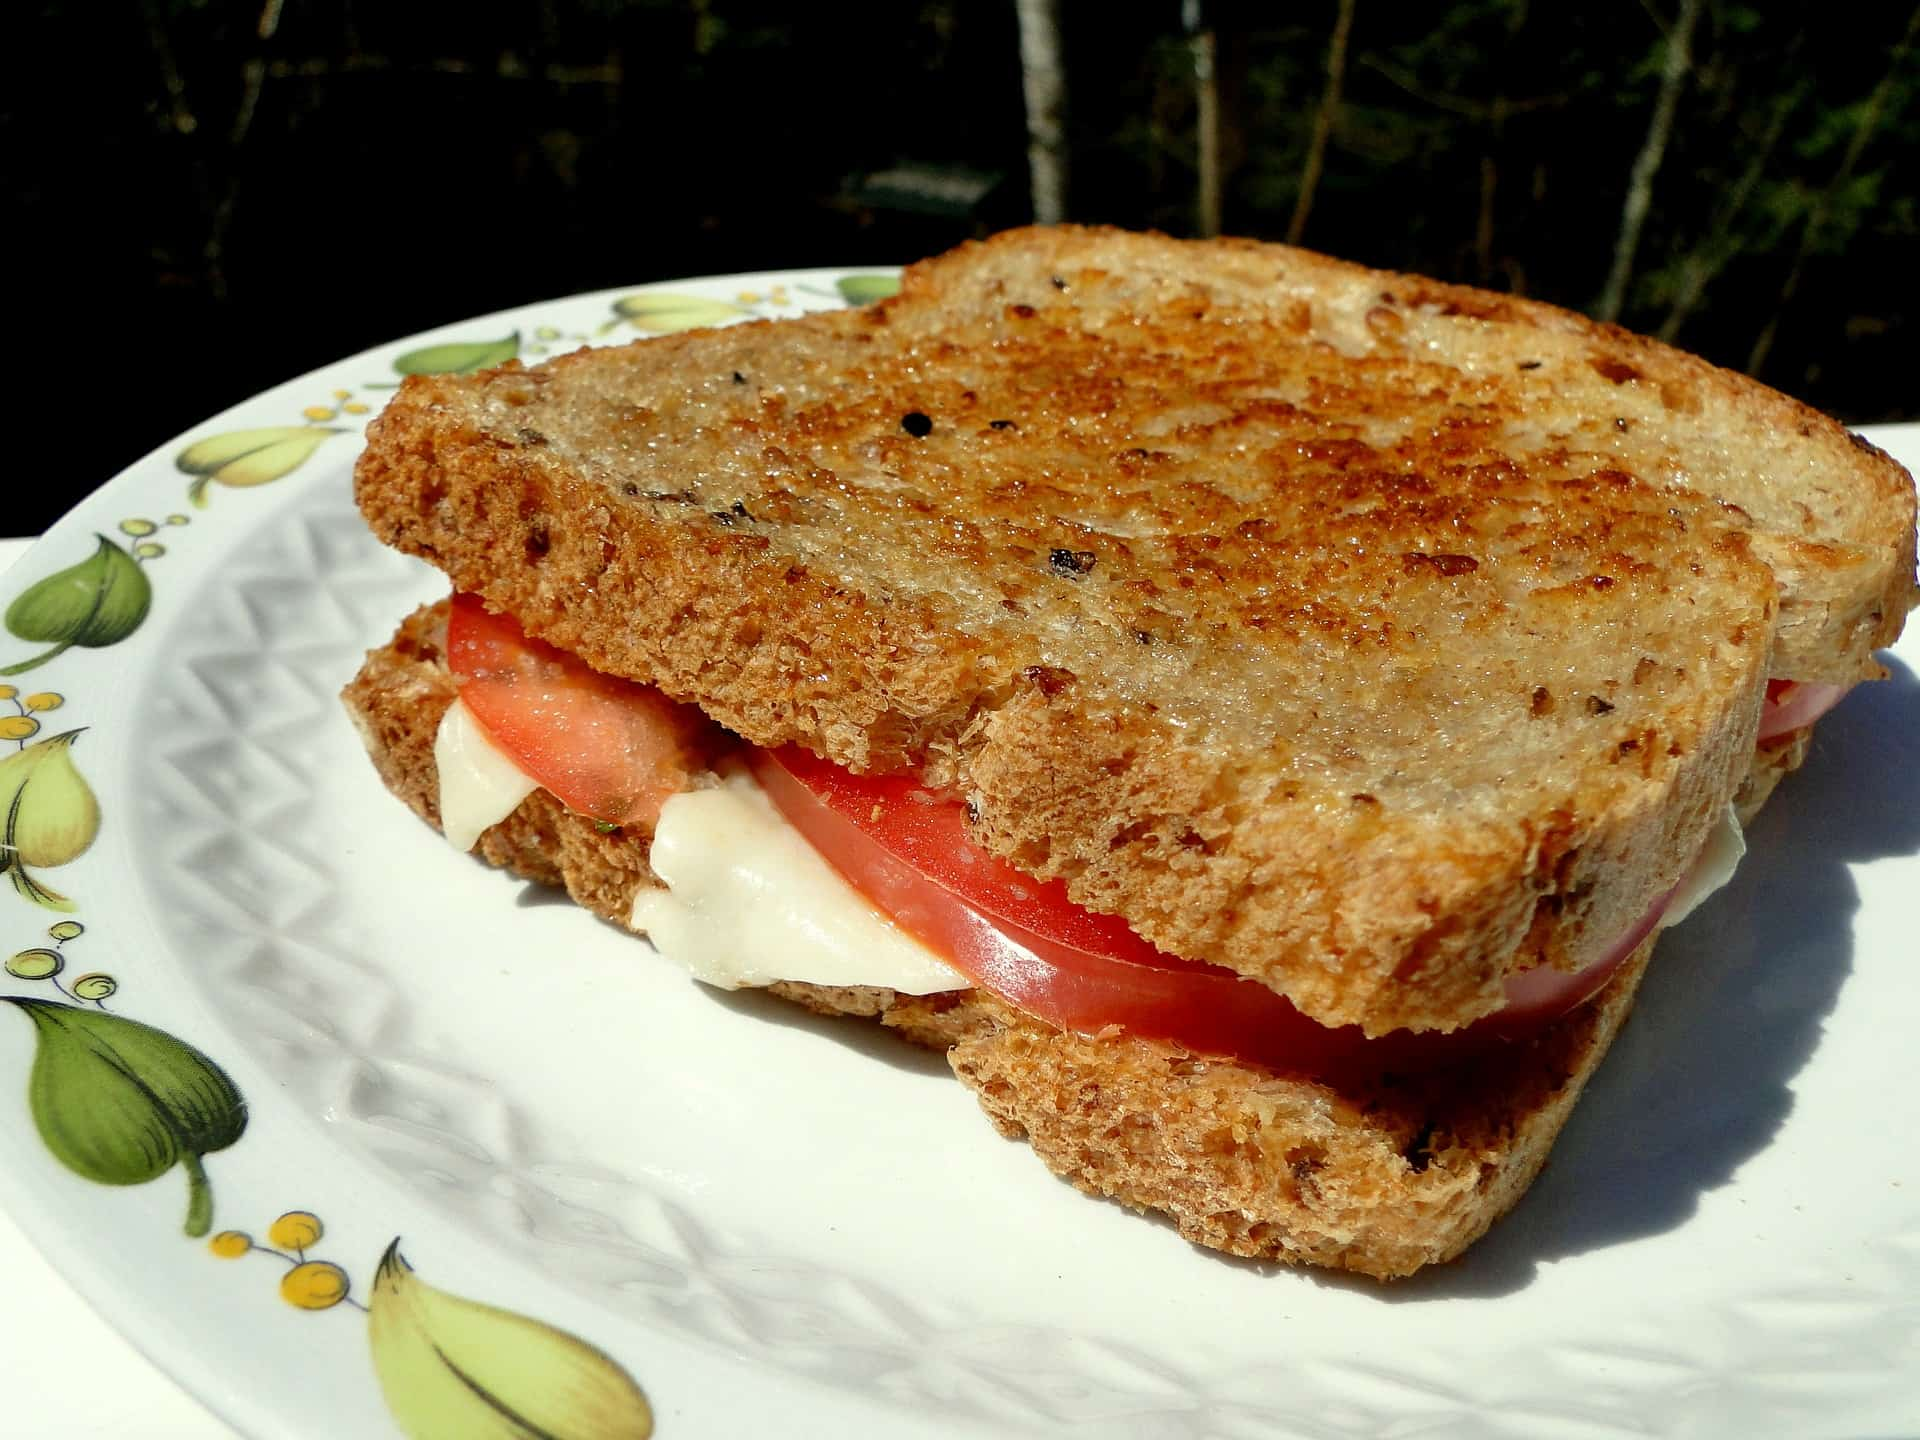 Grill Cheese | Make It A Healthy Indulgence